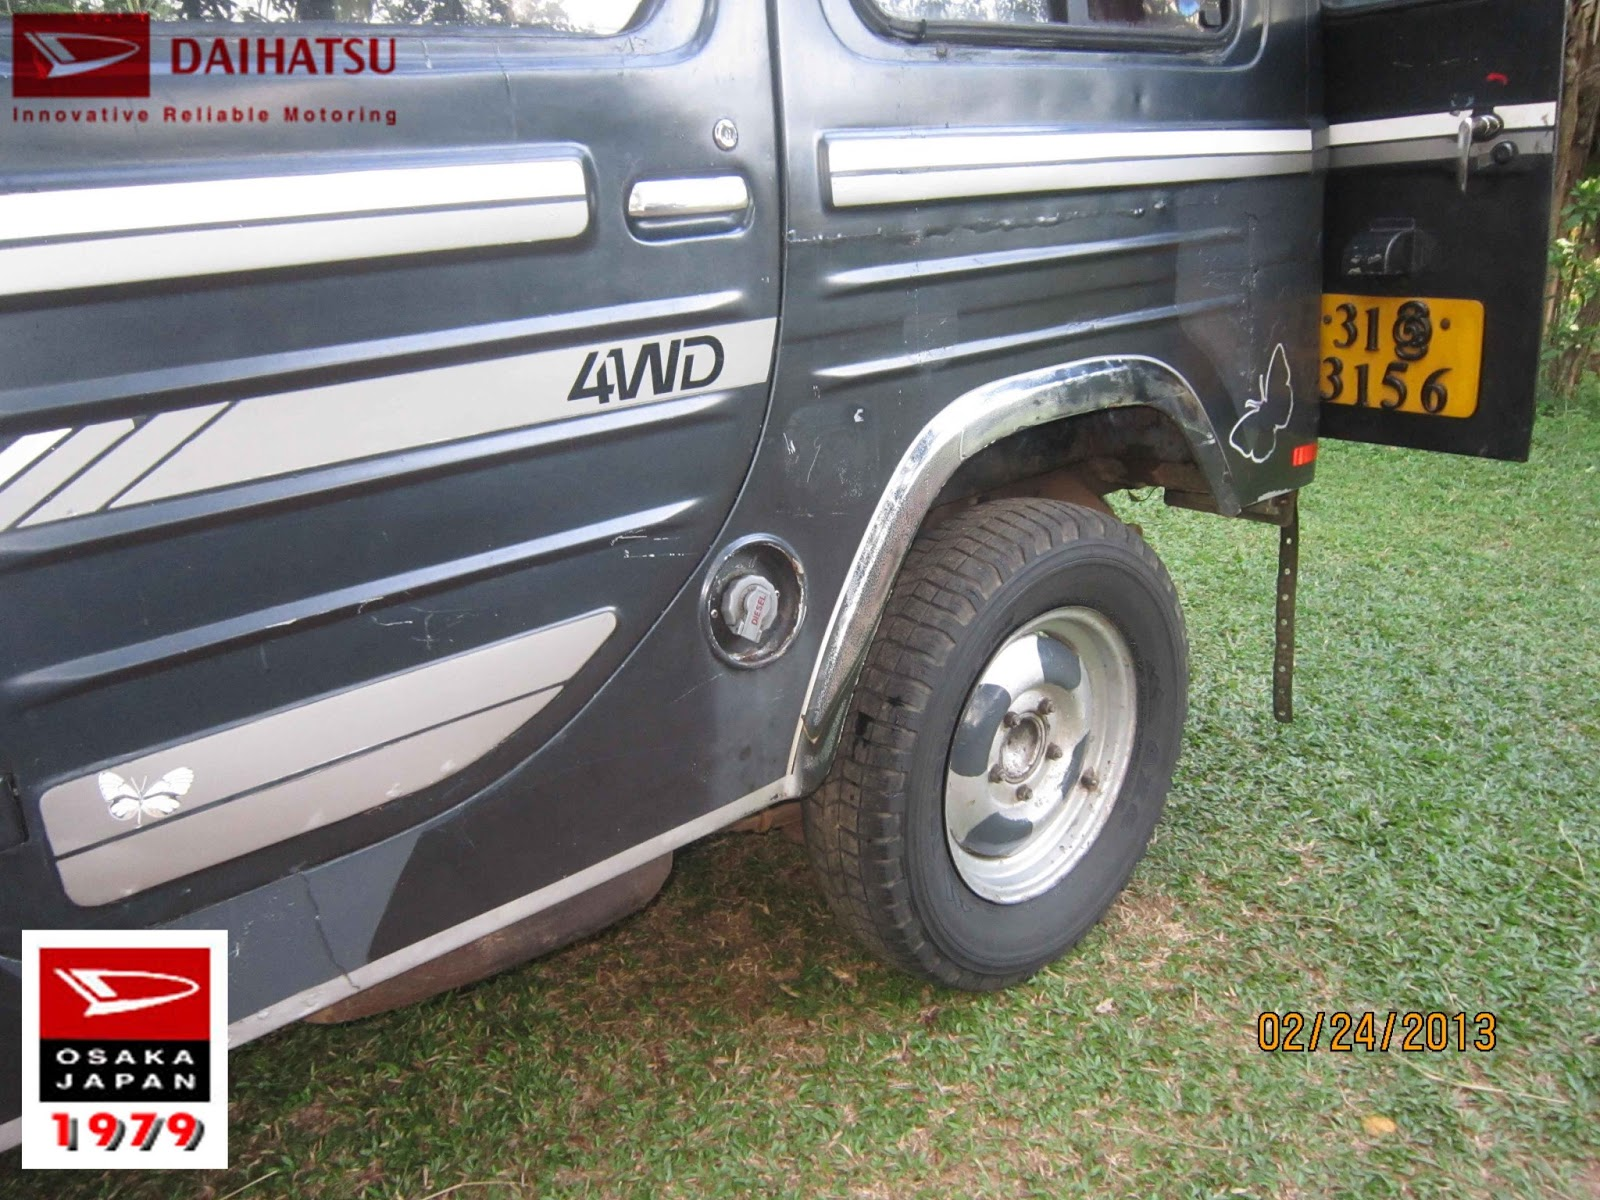 Sampath Premaratne Creations: Jeep with Genuine Condition